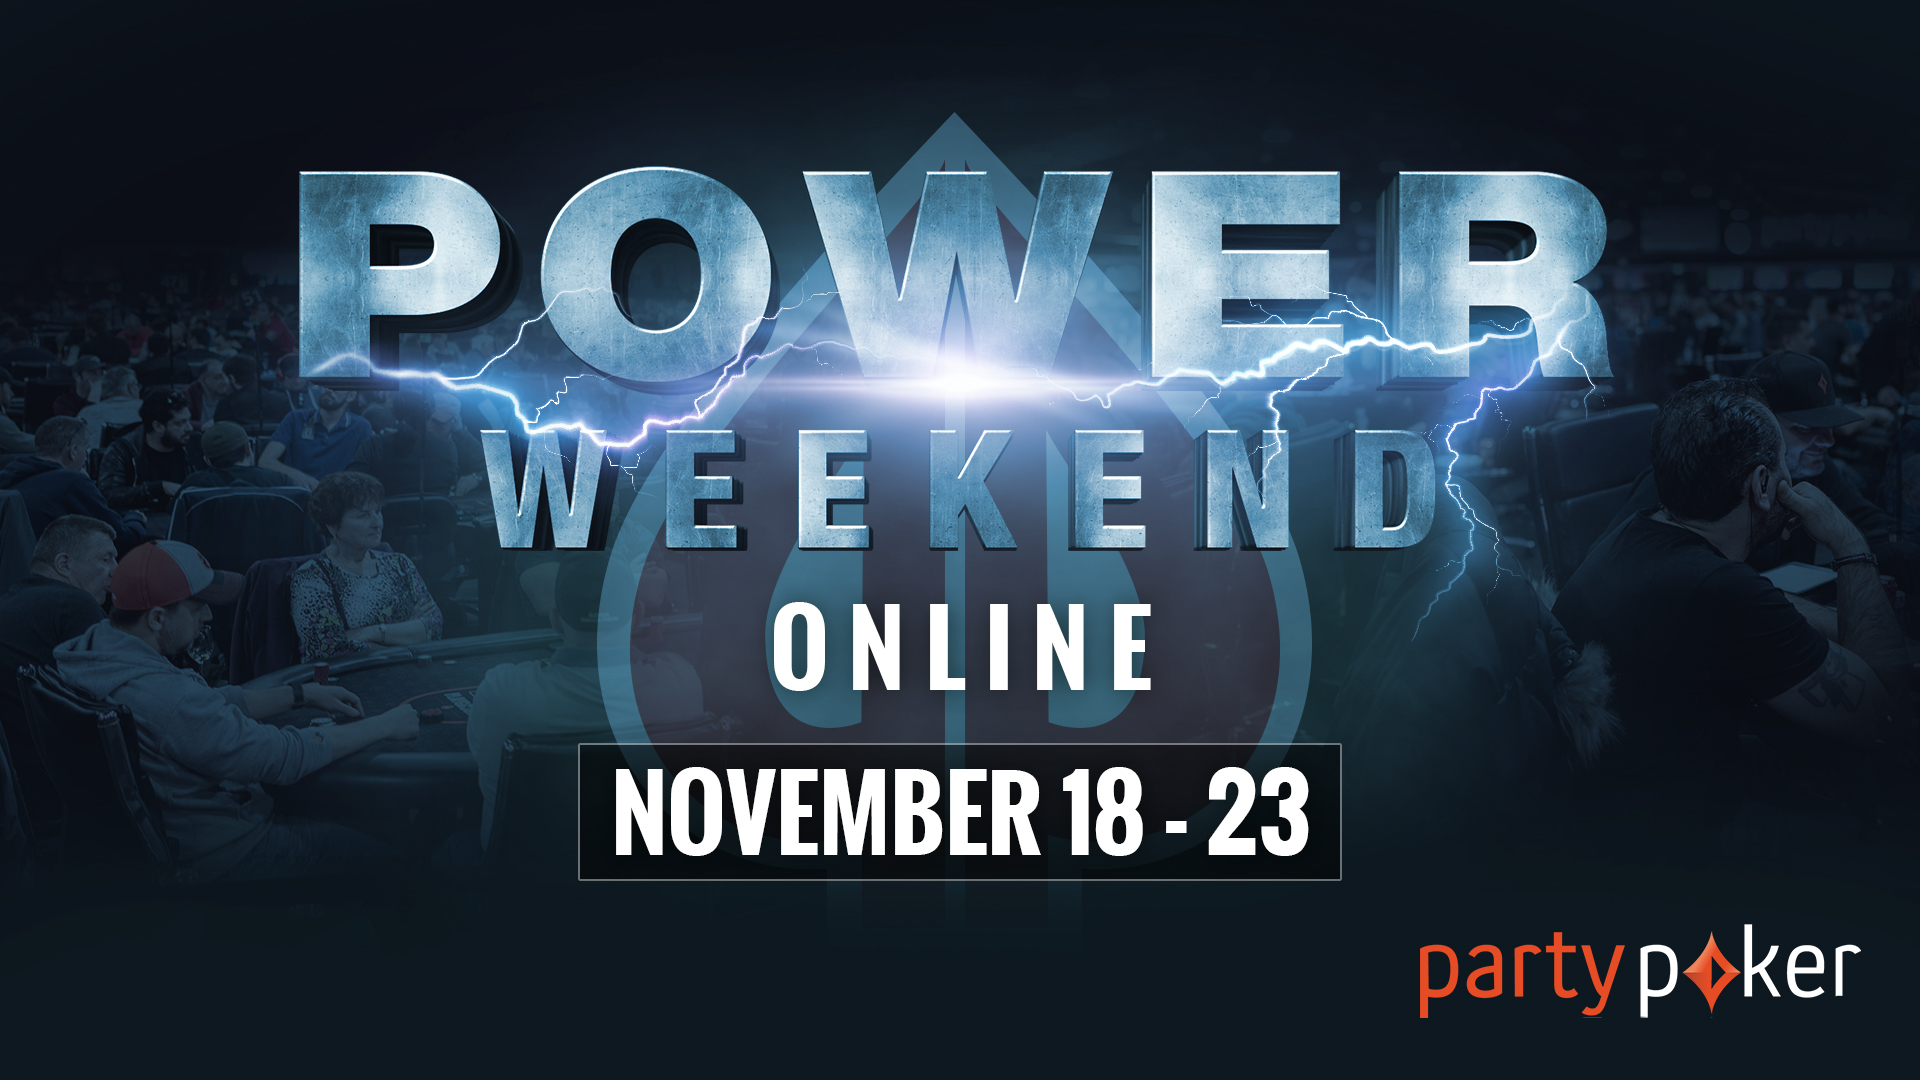 Another Power Weekend on partypoker!